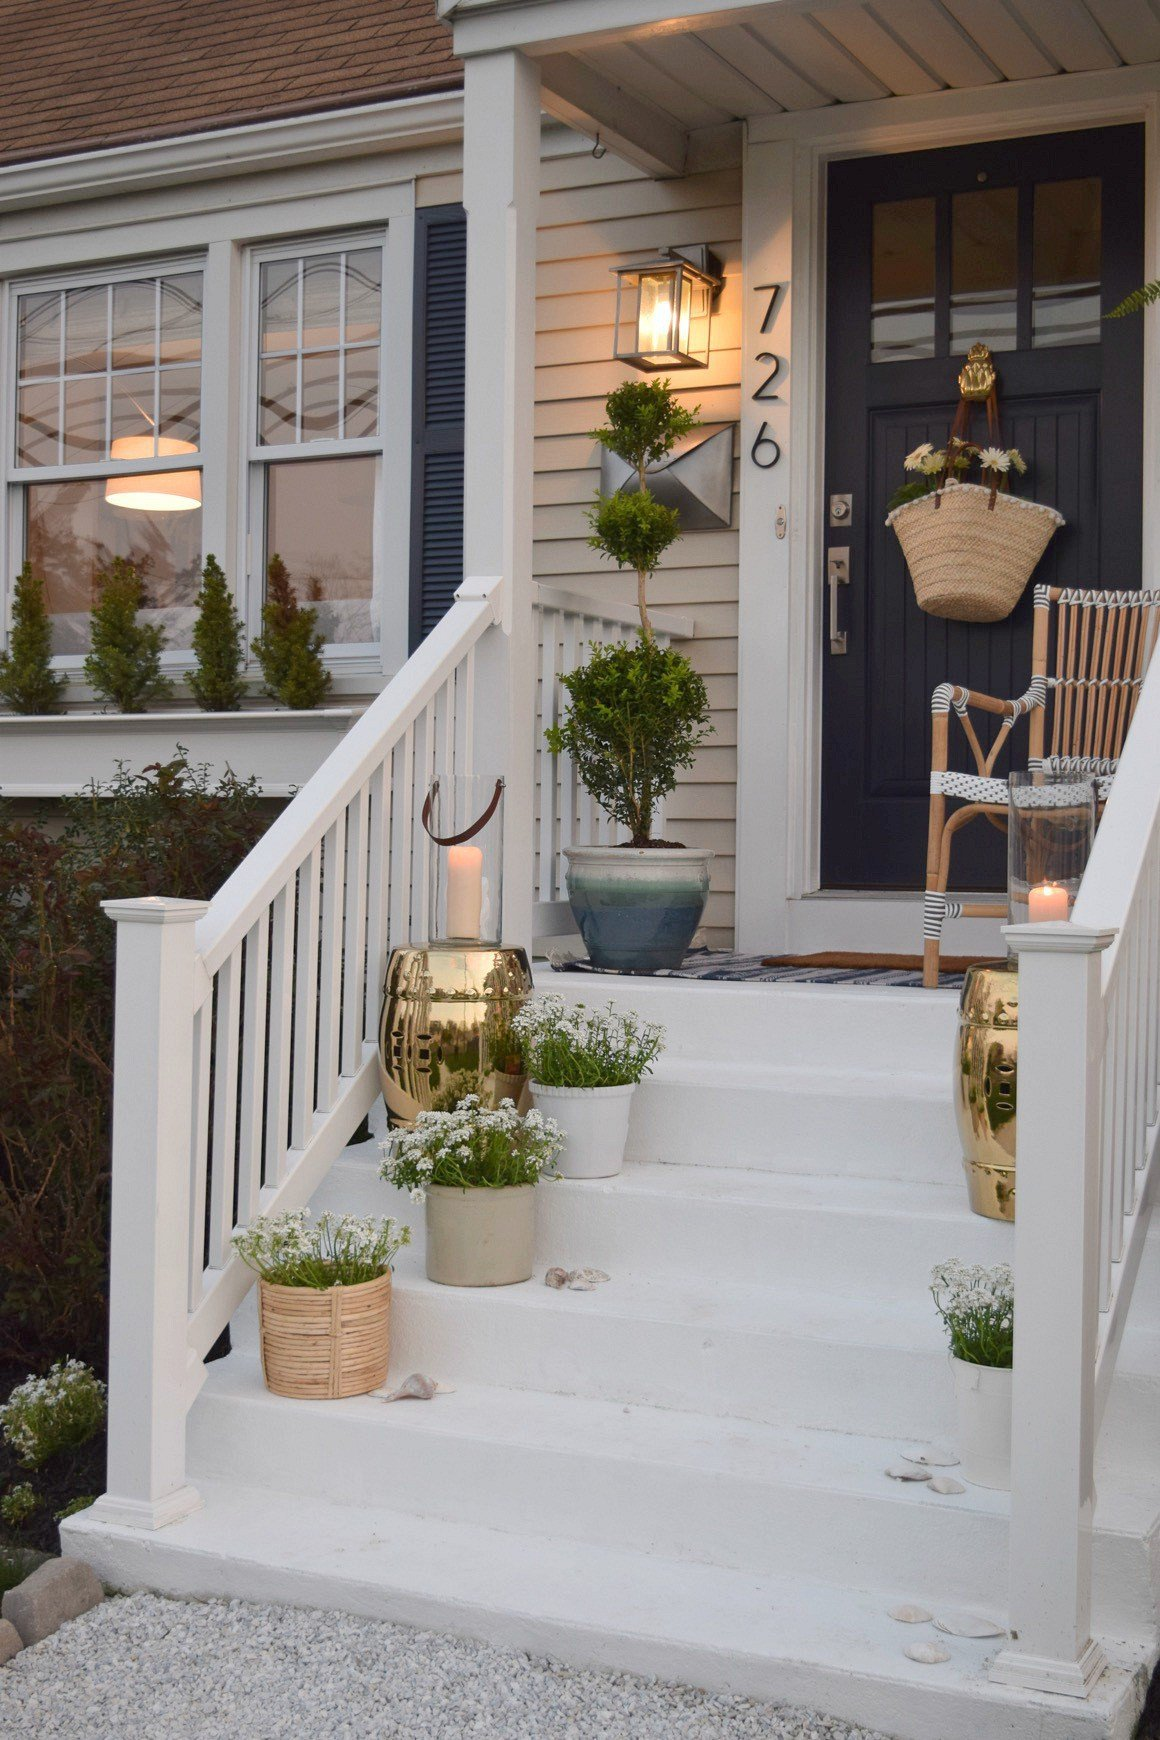 Decor Ideas for Front Porch Awesome Front Porch Ideas and Designing the Outdoors Nesting